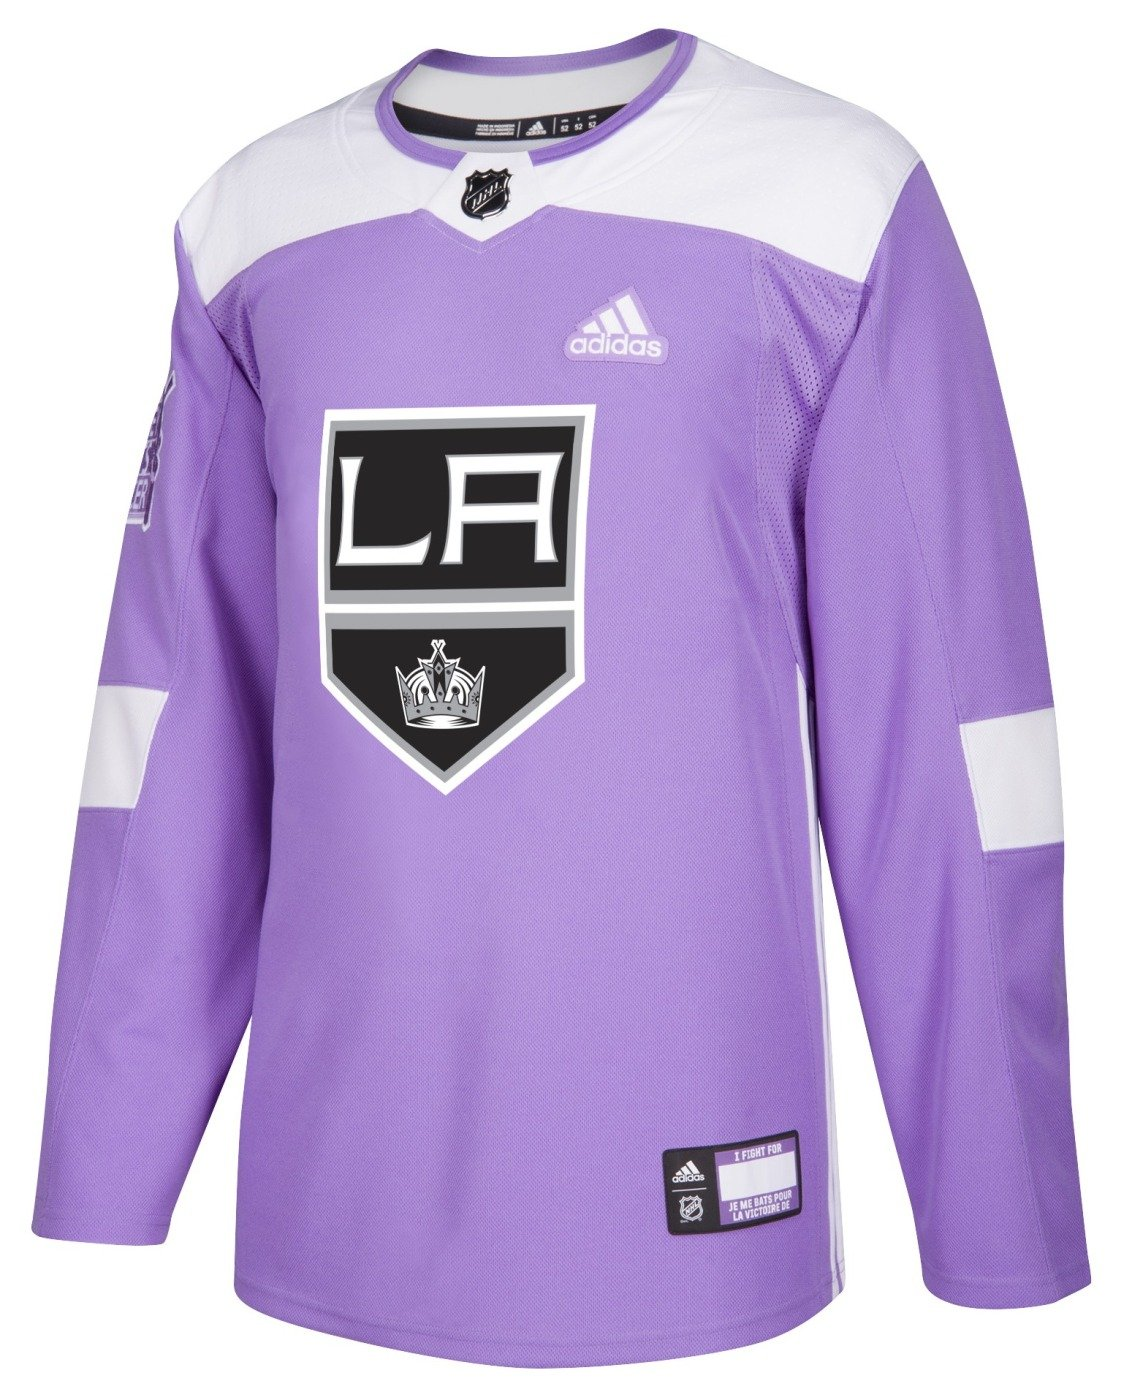 e7ce2c857 Amazon.com : adidas Los Angeles Kings NHL Hockey Fights Cancer Mens  Authentic Practice Jersey : Sports & Outdoors